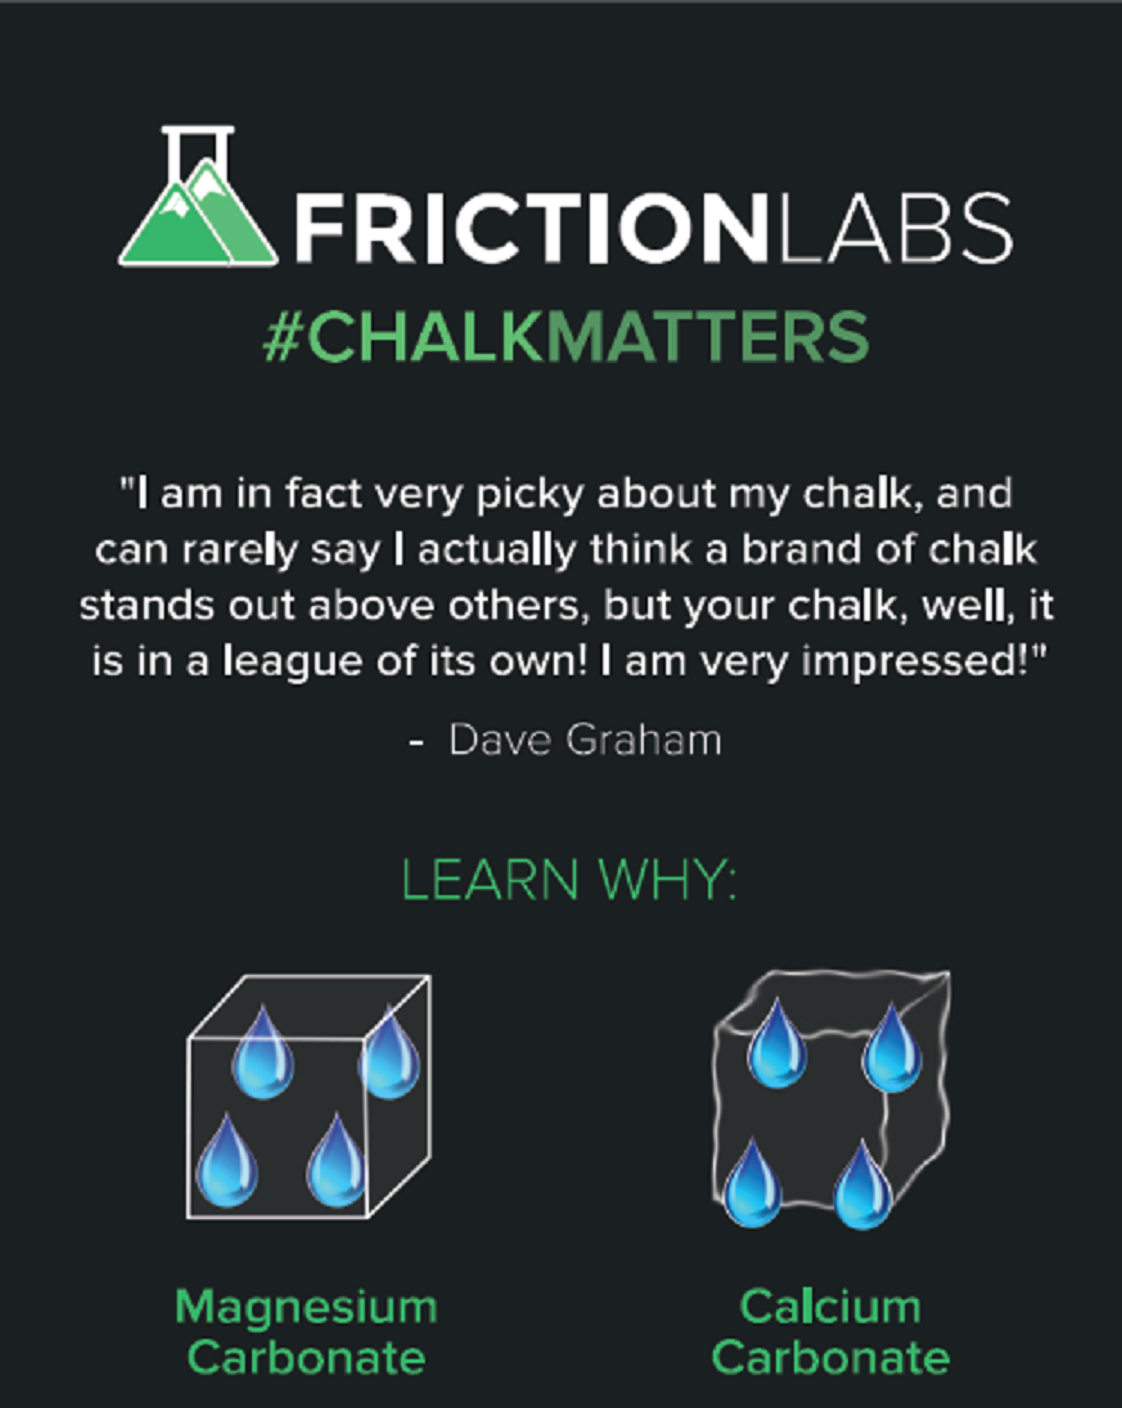 friction lab chalk matters top